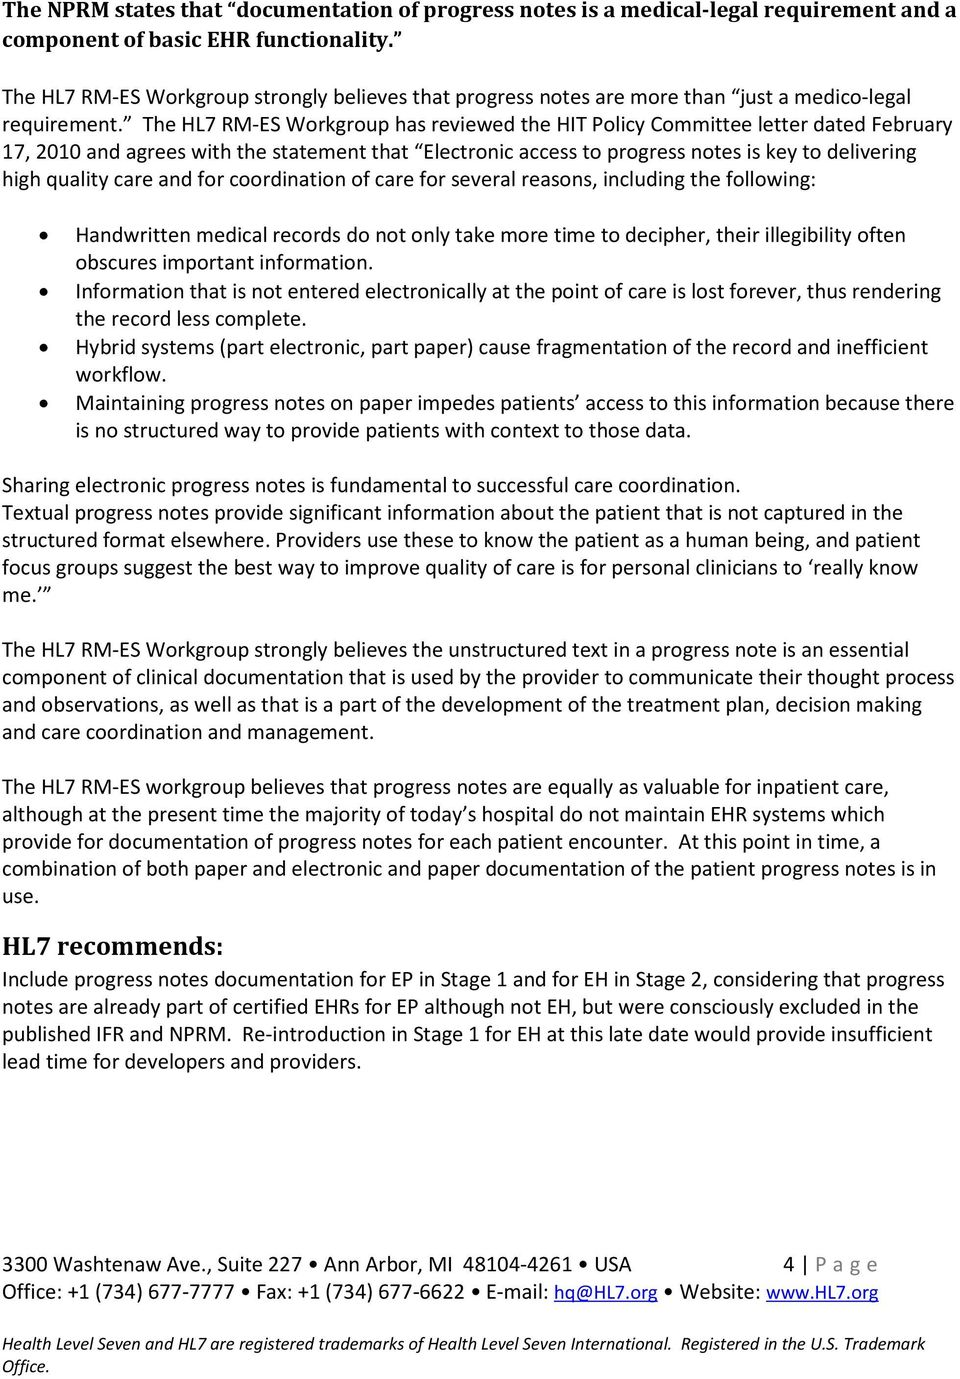 The HL7 RM-ES Workgroup has reviewed the HIT Policy Committee letter dated February 17, 2010 and agrees with the statement that Electronic access to progress notes is key to delivering high quality